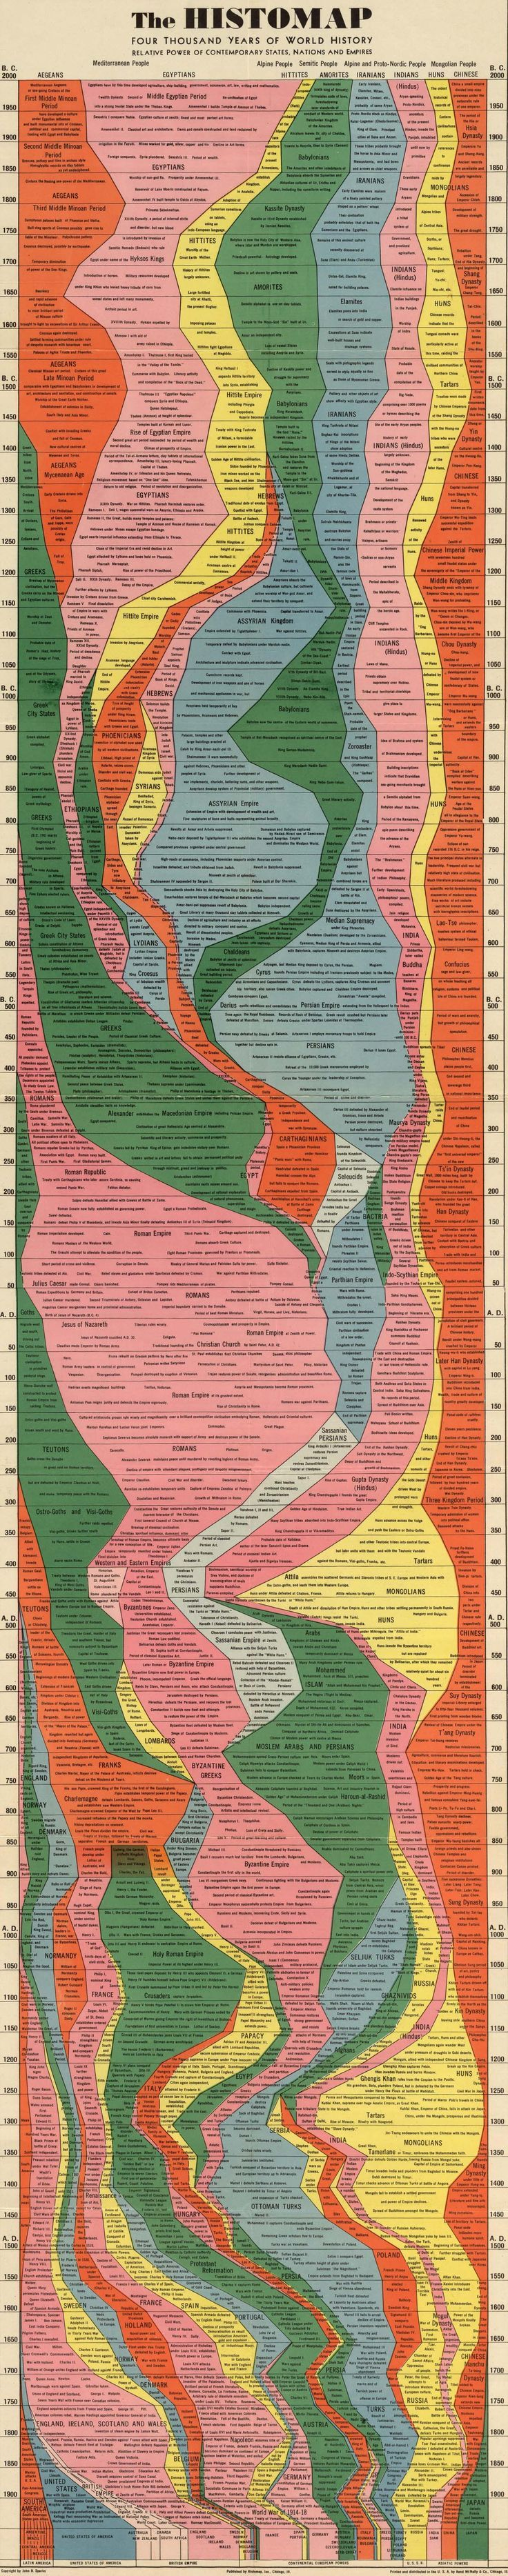 The Histomap - Four Thousand Years of World History by John B. Sparks and Rand McNally and Co.  via hectolima: